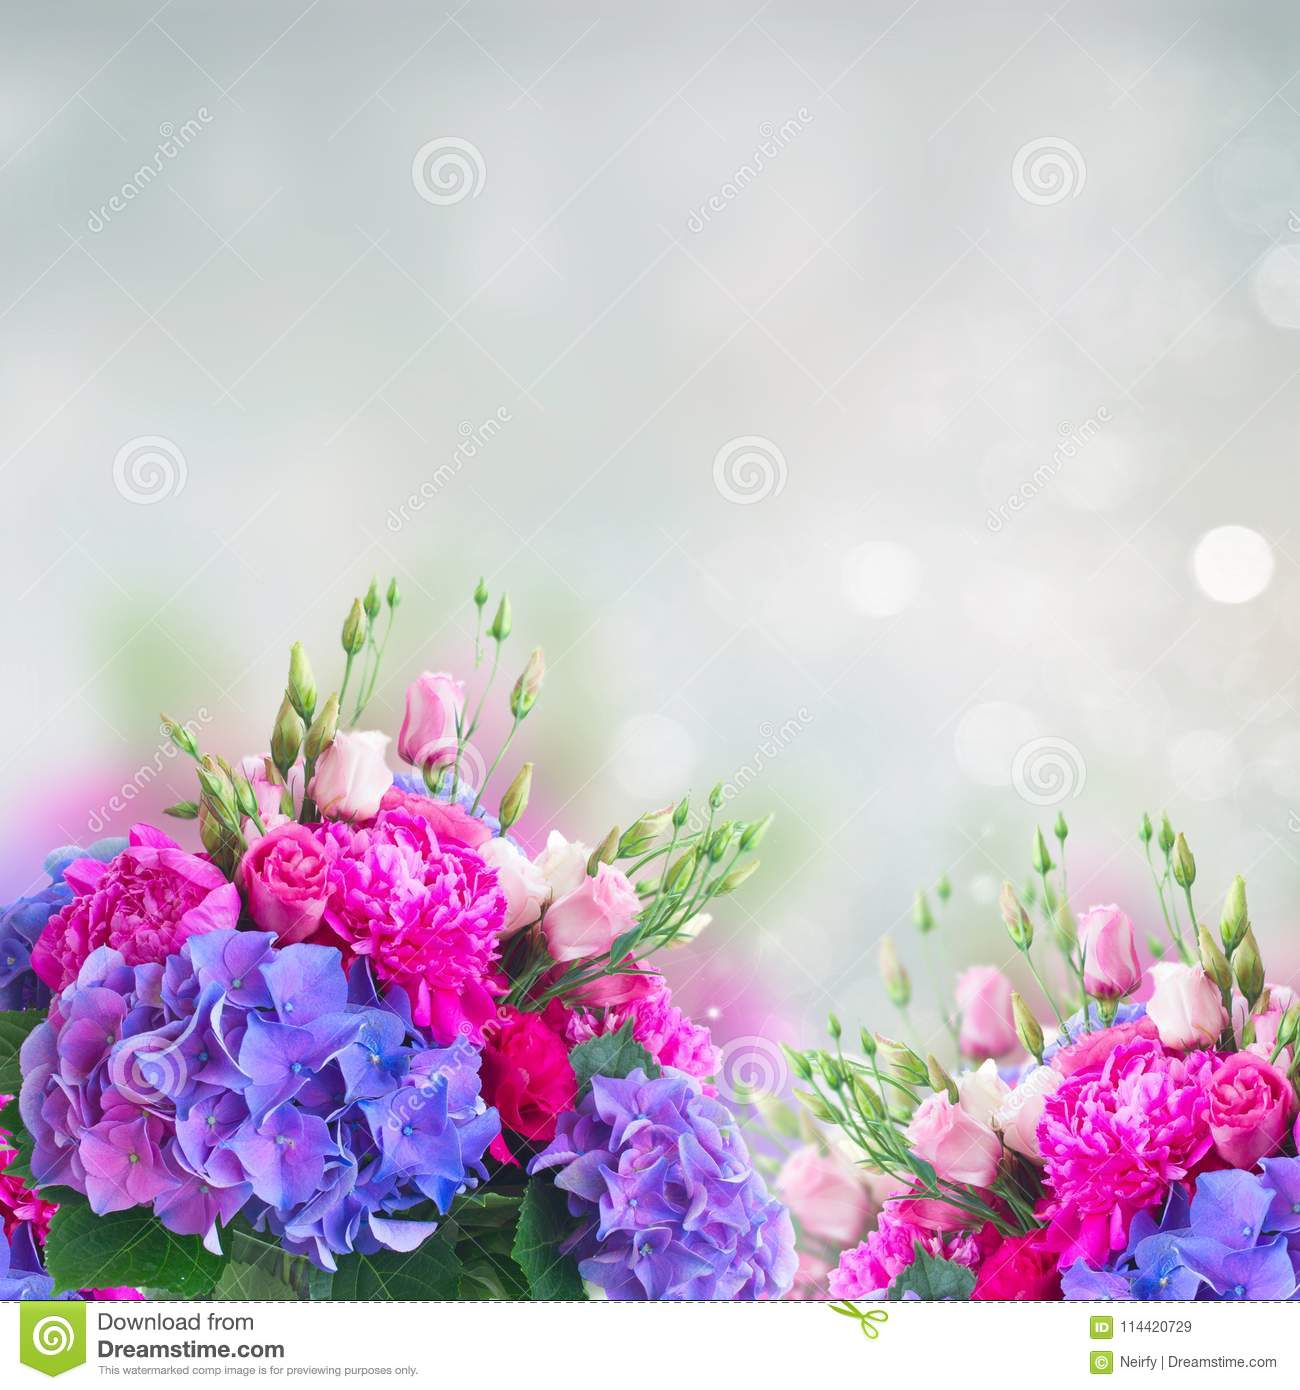 Bright pink and blue flowers stock image image of bloom blossom bright pink and blue flowers izmirmasajfo